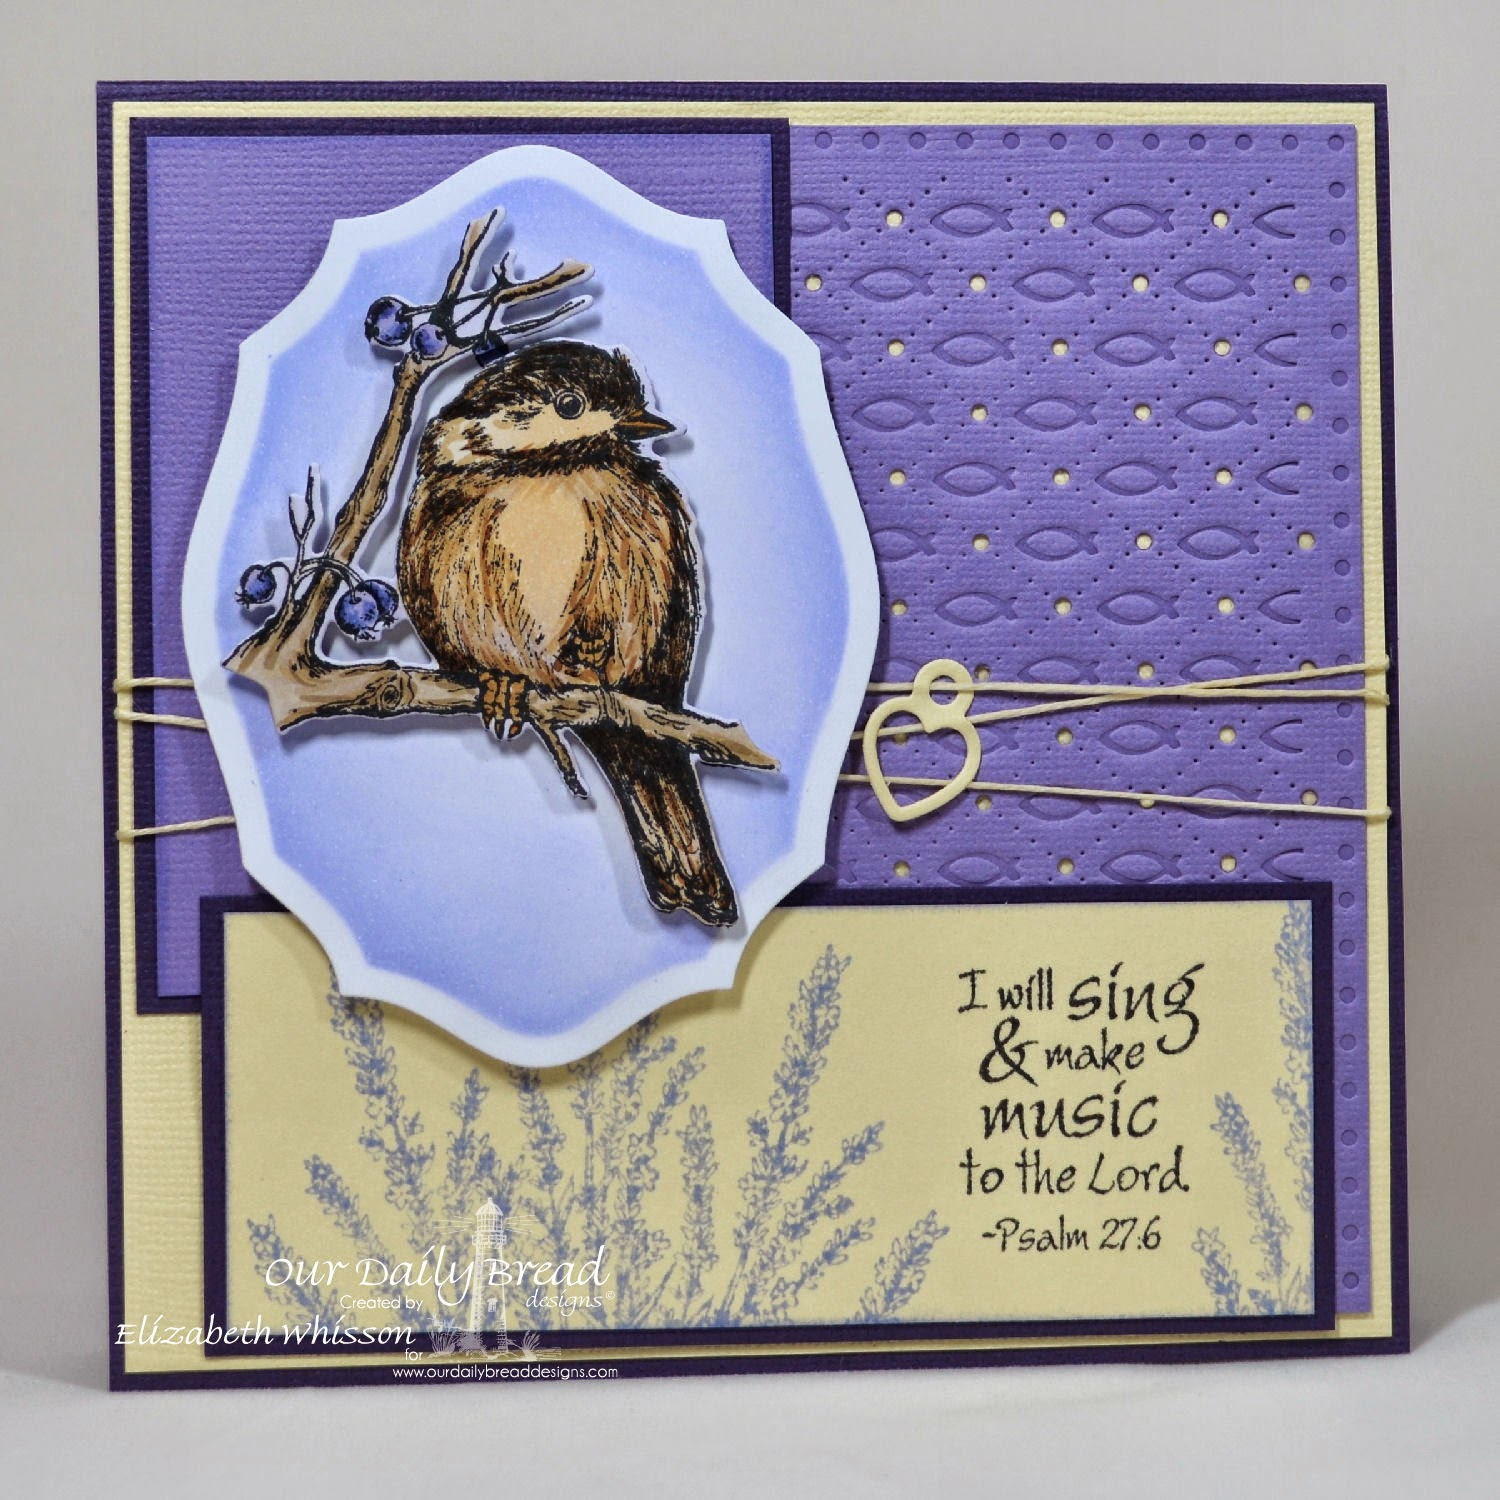 Elizabeth Whisson, Chickadee, Our Daily Bread Designs, bazzill textured, handmade card, twine, colour challenge, Copics, You will find refuge, Psalm 27:6, elegant ovals, lavender, faithful fish pattern, debossing, mini tags, just a note, I will sing and make music to the Lord